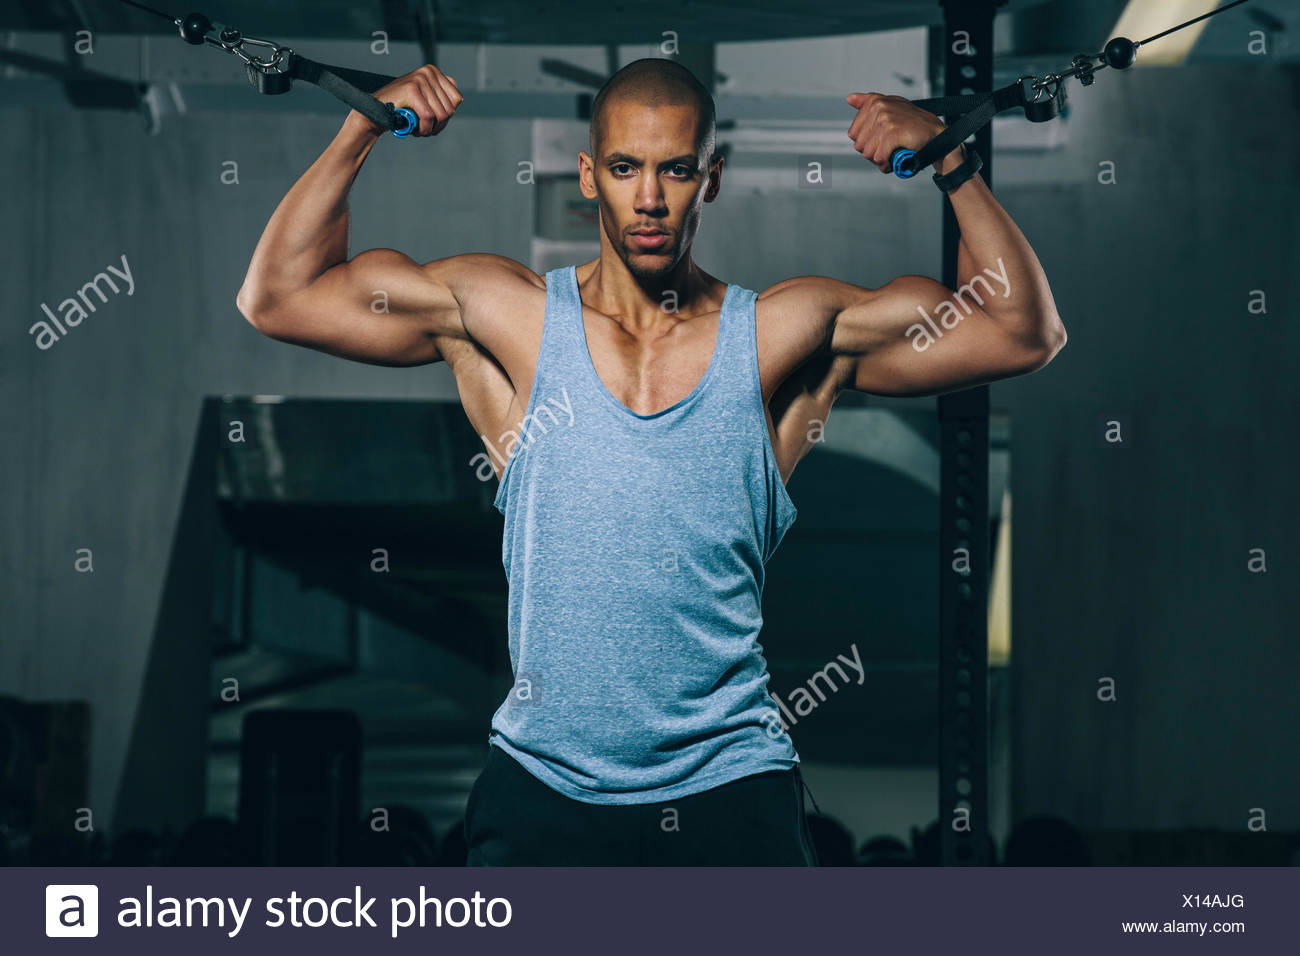 Young man training at cable crossover in gym - Stock Image